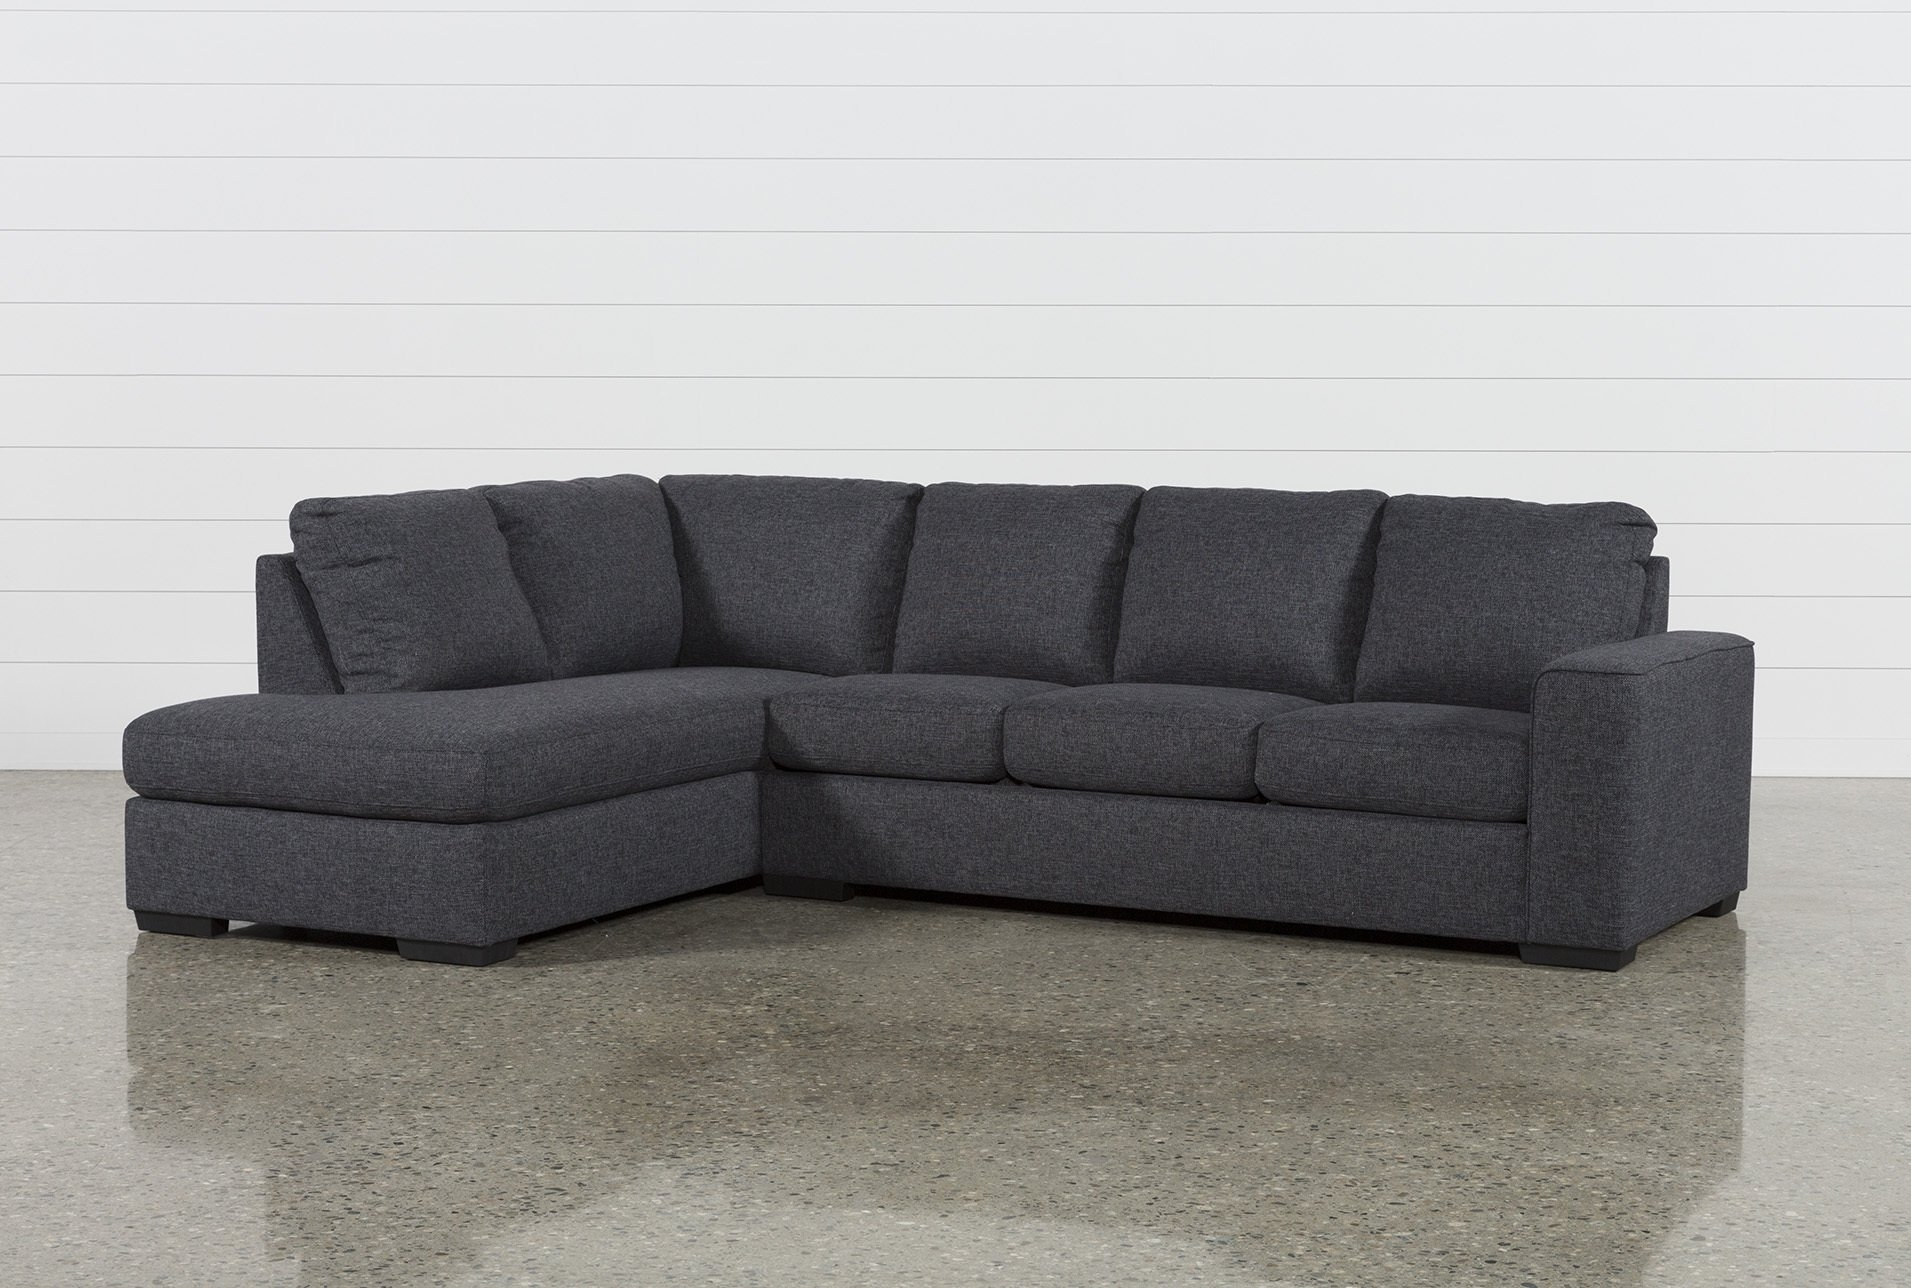 Lucy Dark Grey 2 Piece Sectional W/laf Chaise | Dark Grey And Products regarding Aspen 2 Piece Sleeper Sectionals With Laf Chaise (Image 19 of 30)